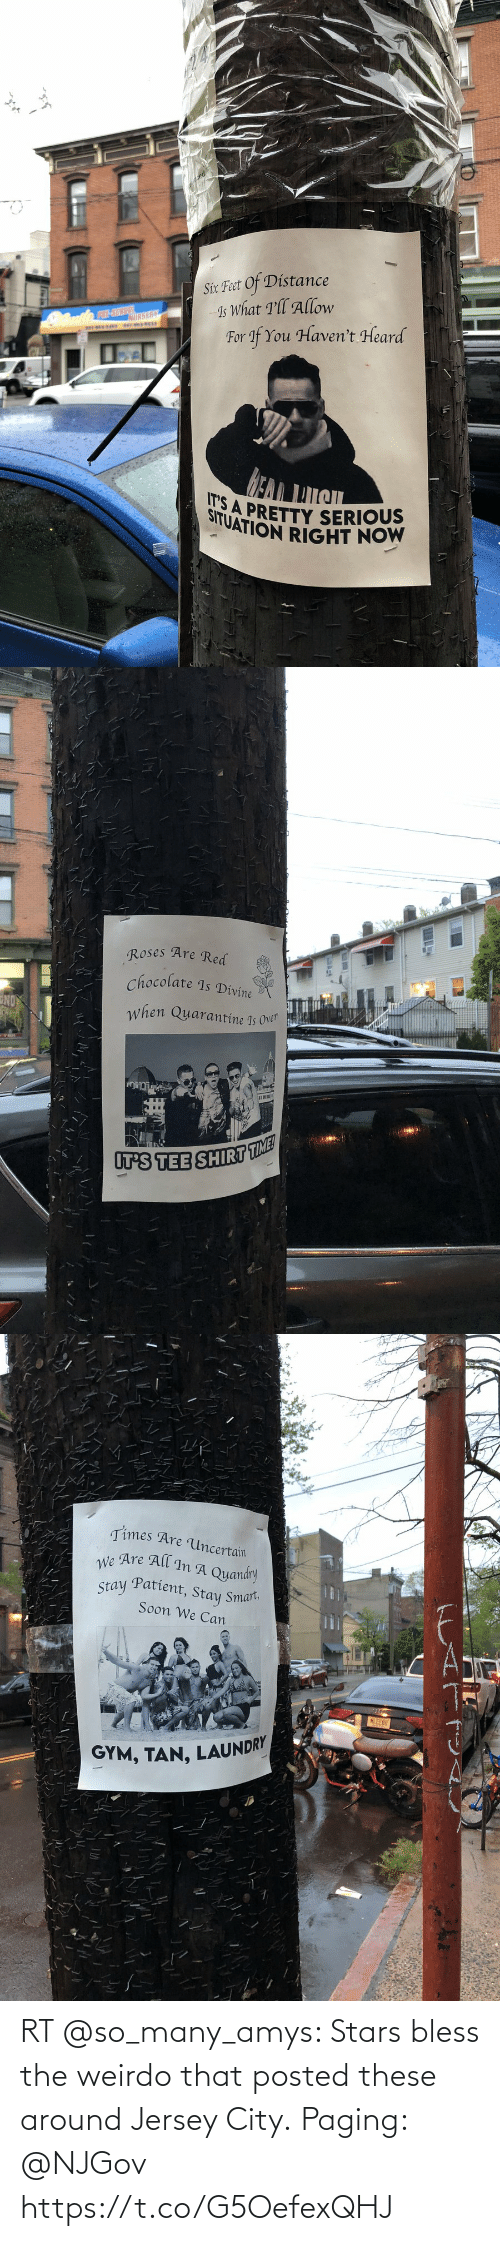 bless: RT @so_many_amys: Stars bless the weirdo that posted these around Jersey City.  Paging: @NJGov https://t.co/G5OefexQHJ